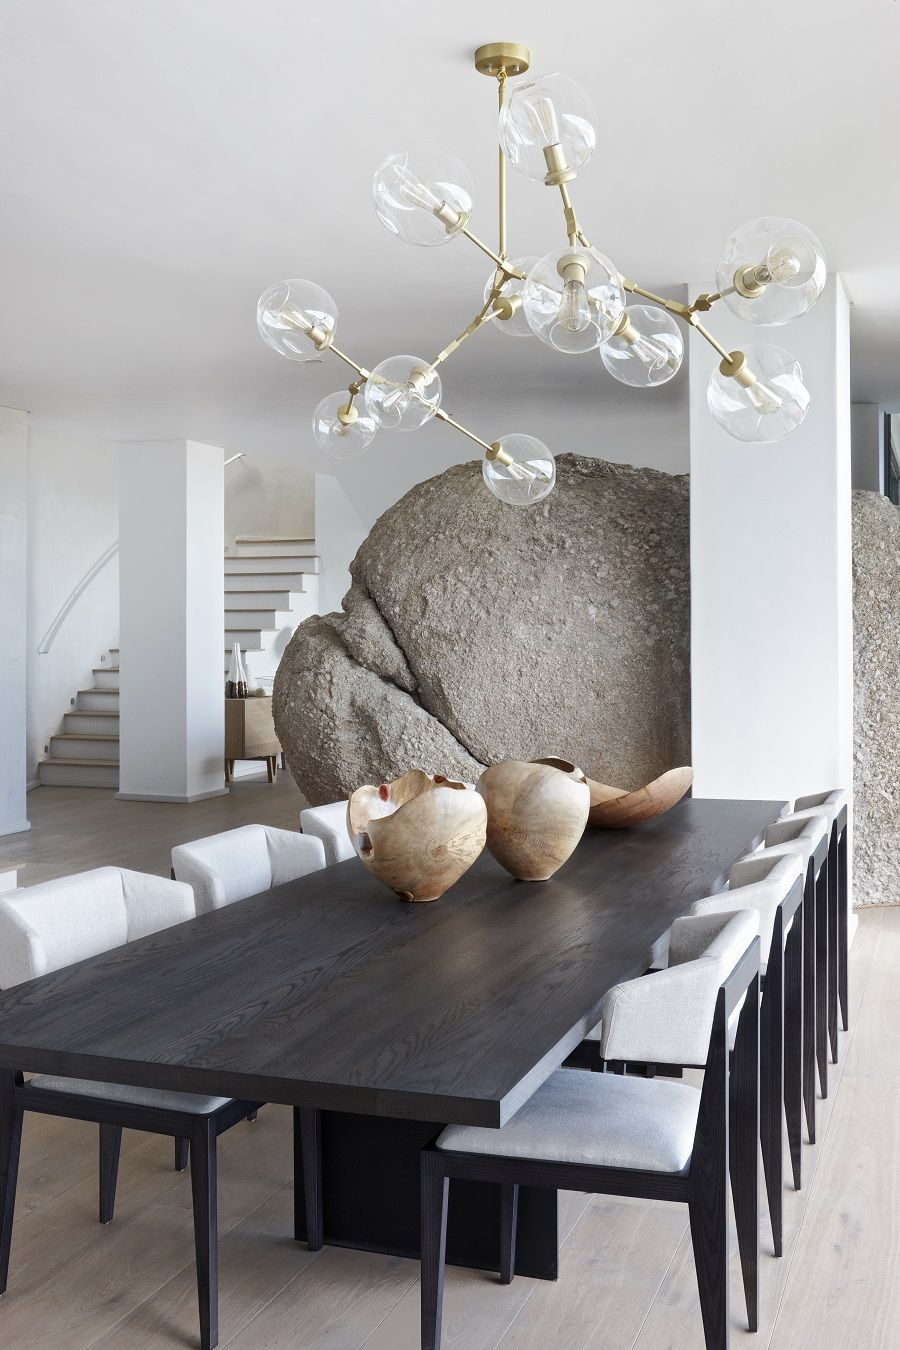 Bomax Okha Design Luxurious South African House With Integrated Natural Feature Dining Room Contemporary Dining Room Interiors Transitional Dining Chairs African decor dining room